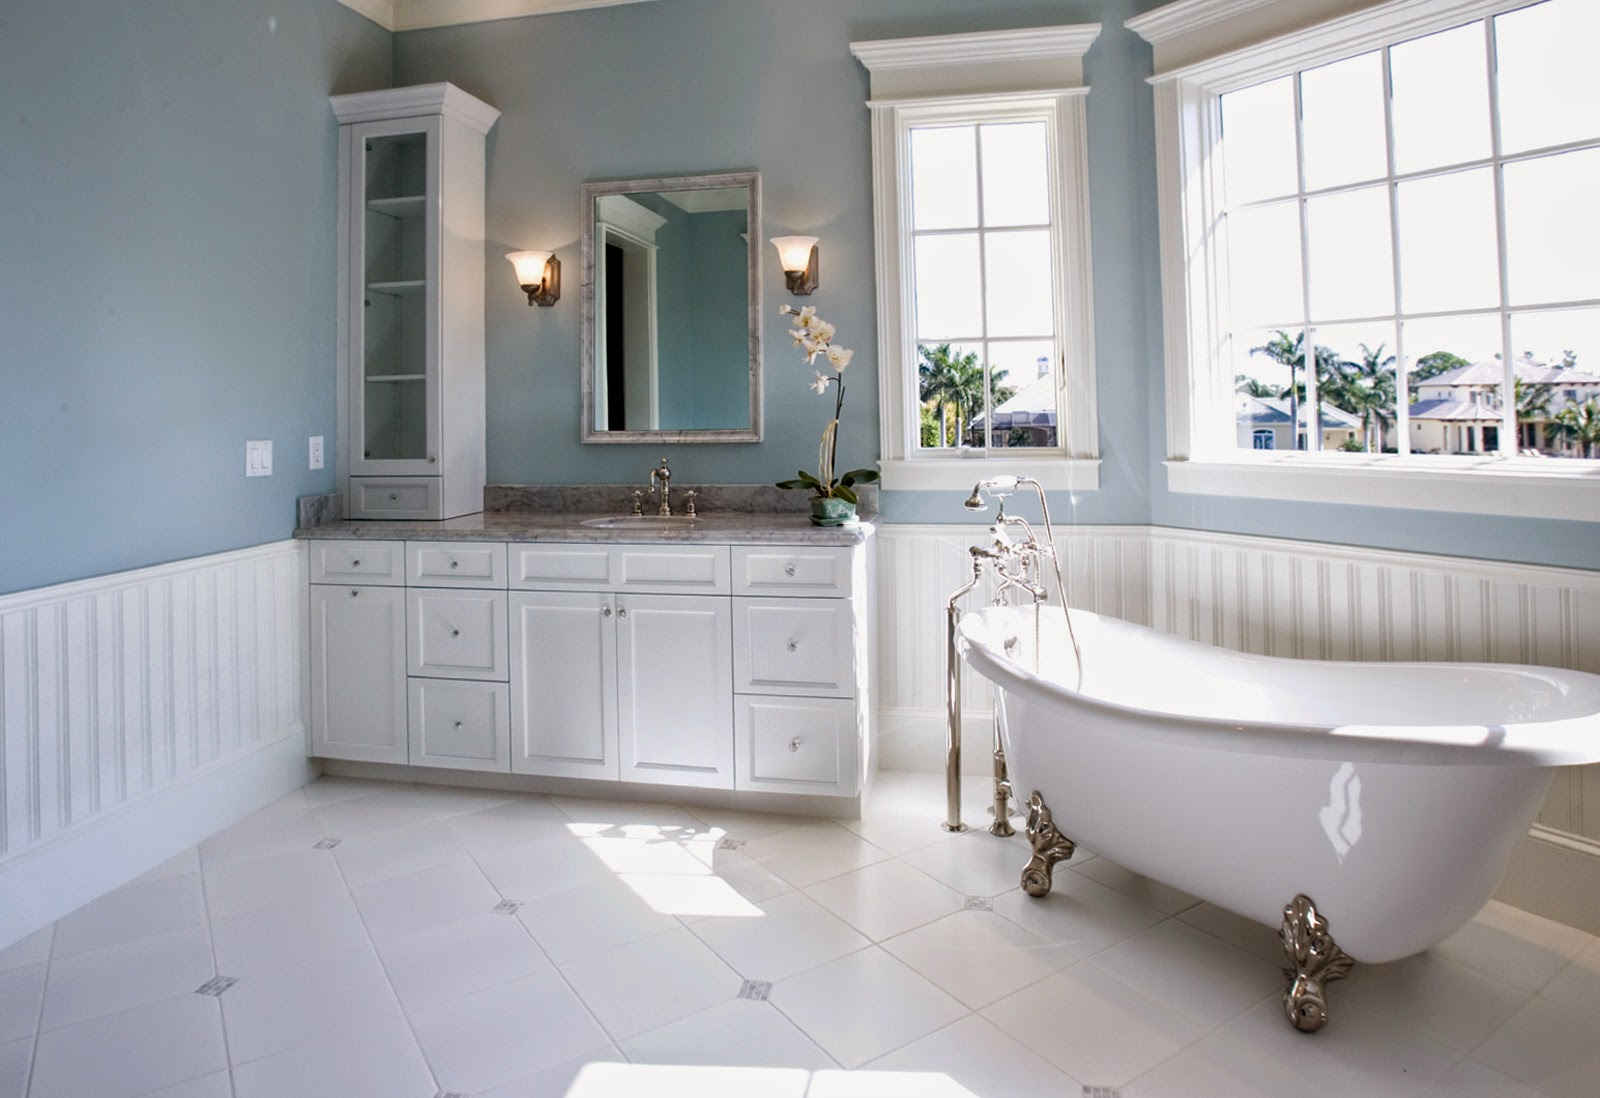 Top 10 beautiful bathroom design 2014 home interior blog for Design own bathroom